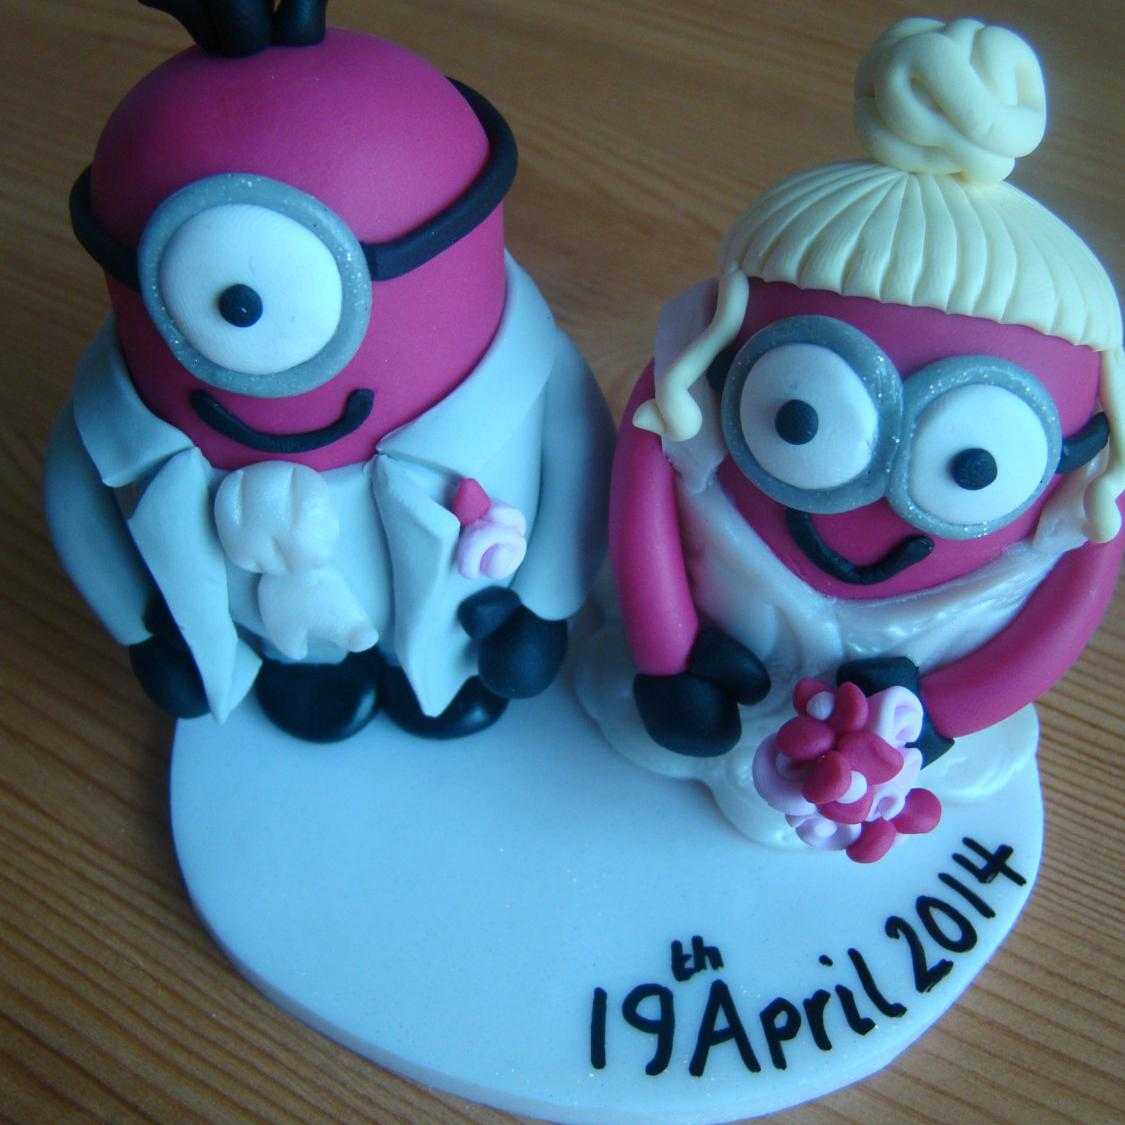 Dispicable Me Minions Wedding Cake Topper Table Centerpieces Custom Made Handmade 2015 Mrs Figurine Sculpture